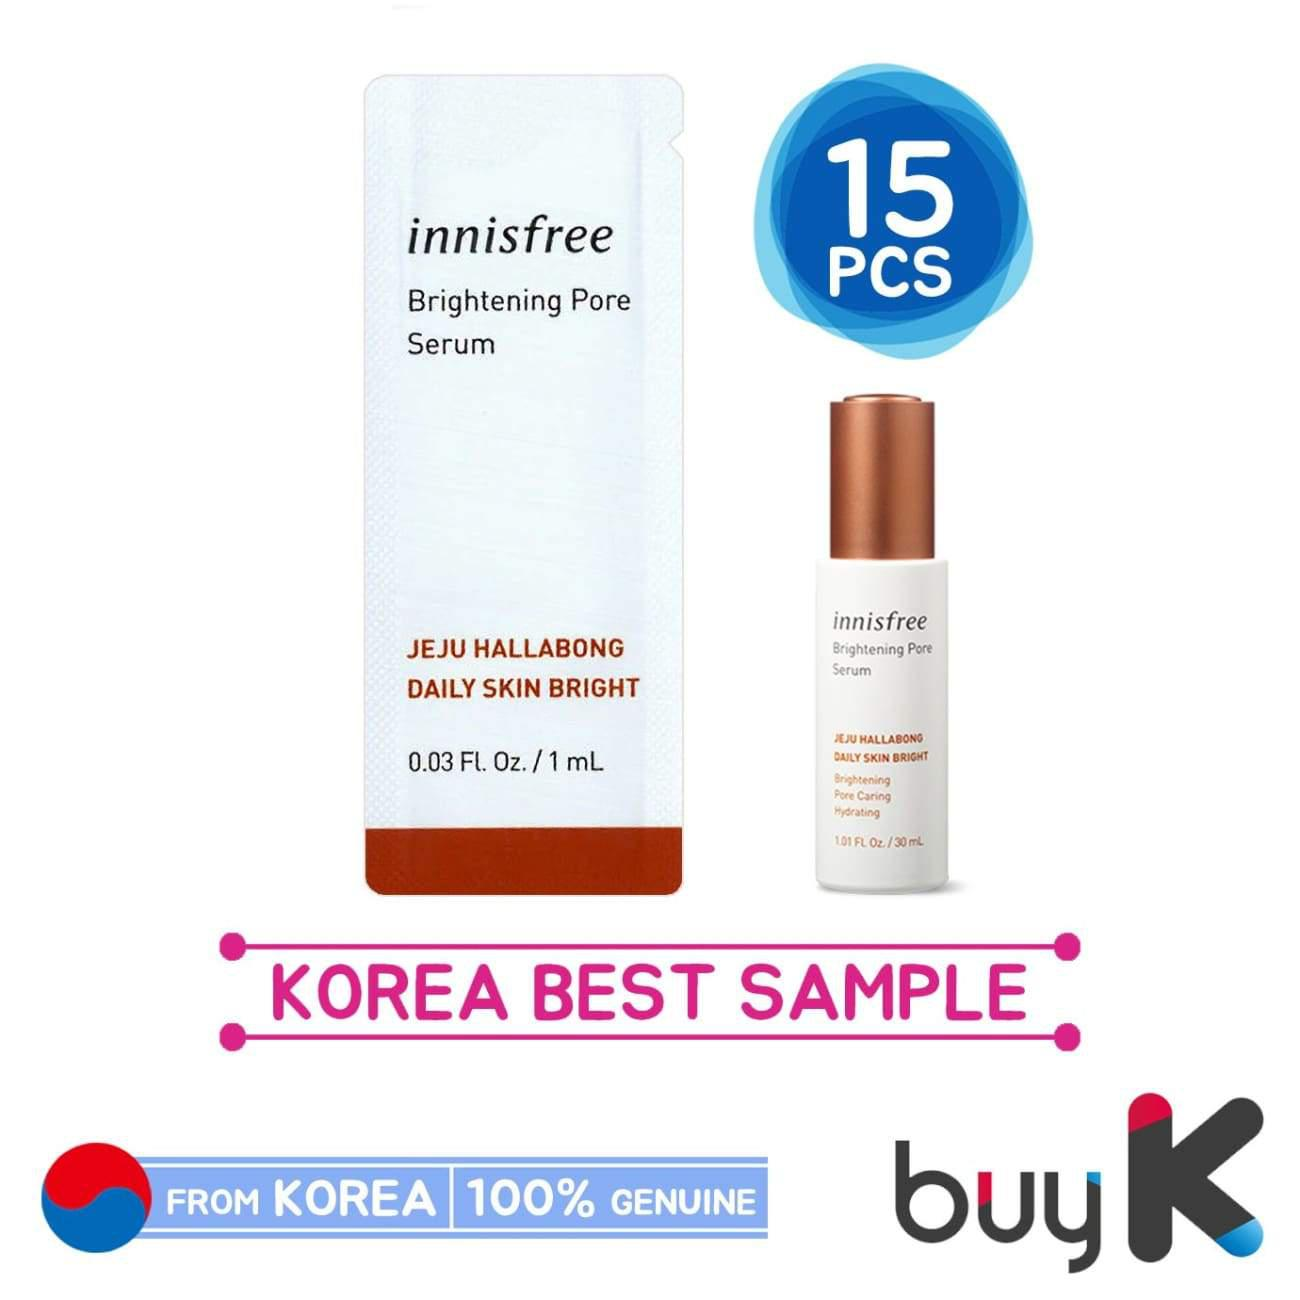 15pcs [INNISFREE] Brightening Pore Serum 1ml (Sample Sachet)